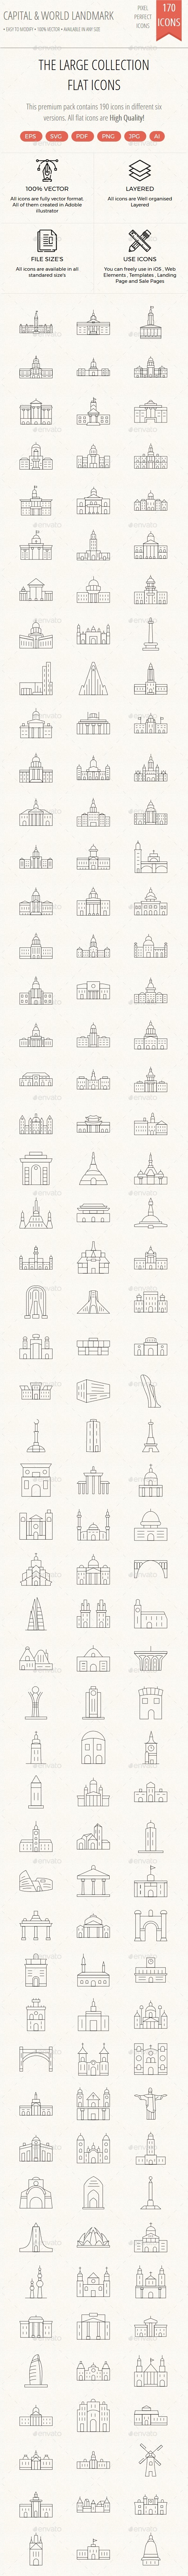 150+ Capital and World Landmarks thin line icons - Web Icons